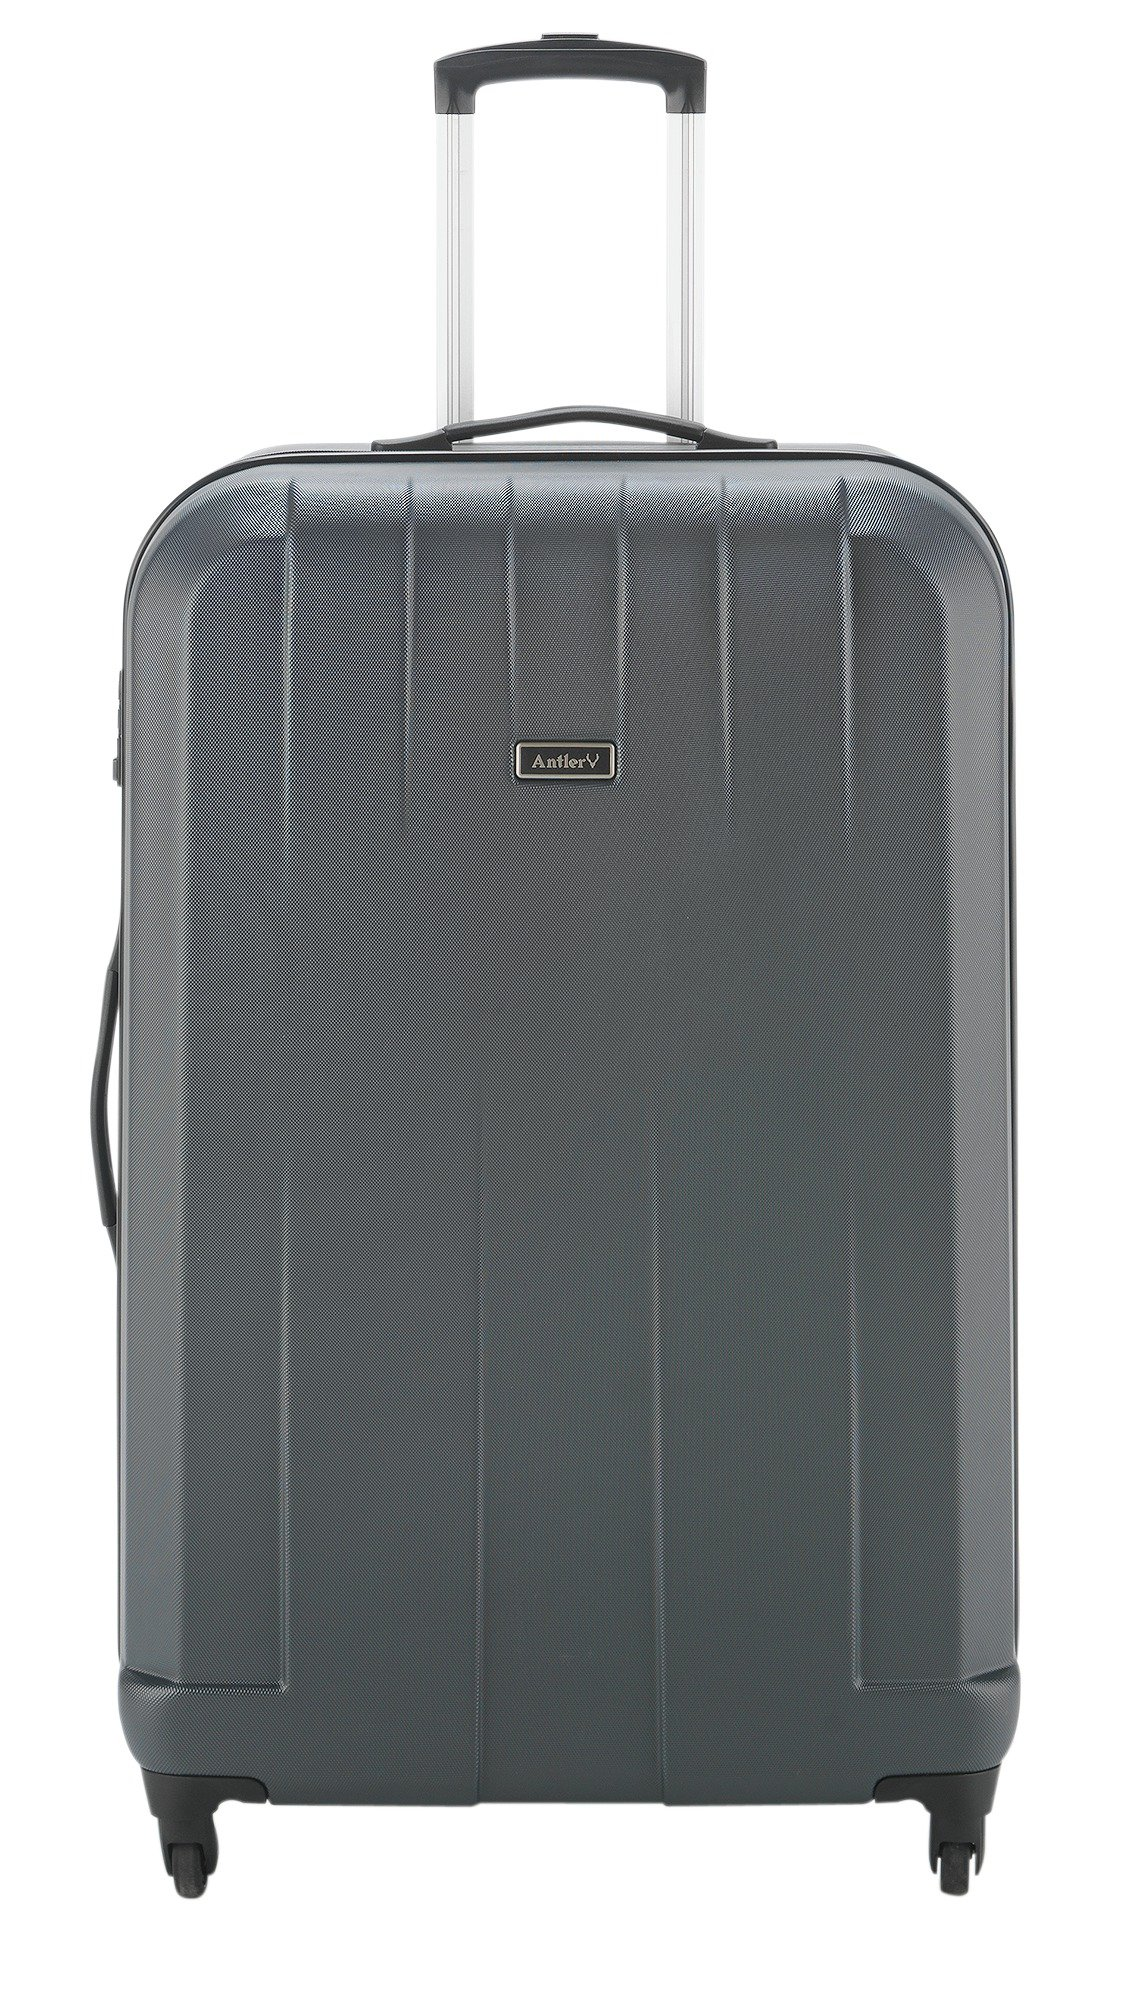 Image of Antler Quadrant Large 4 Wheel Hard Suitcase - Black/Silver